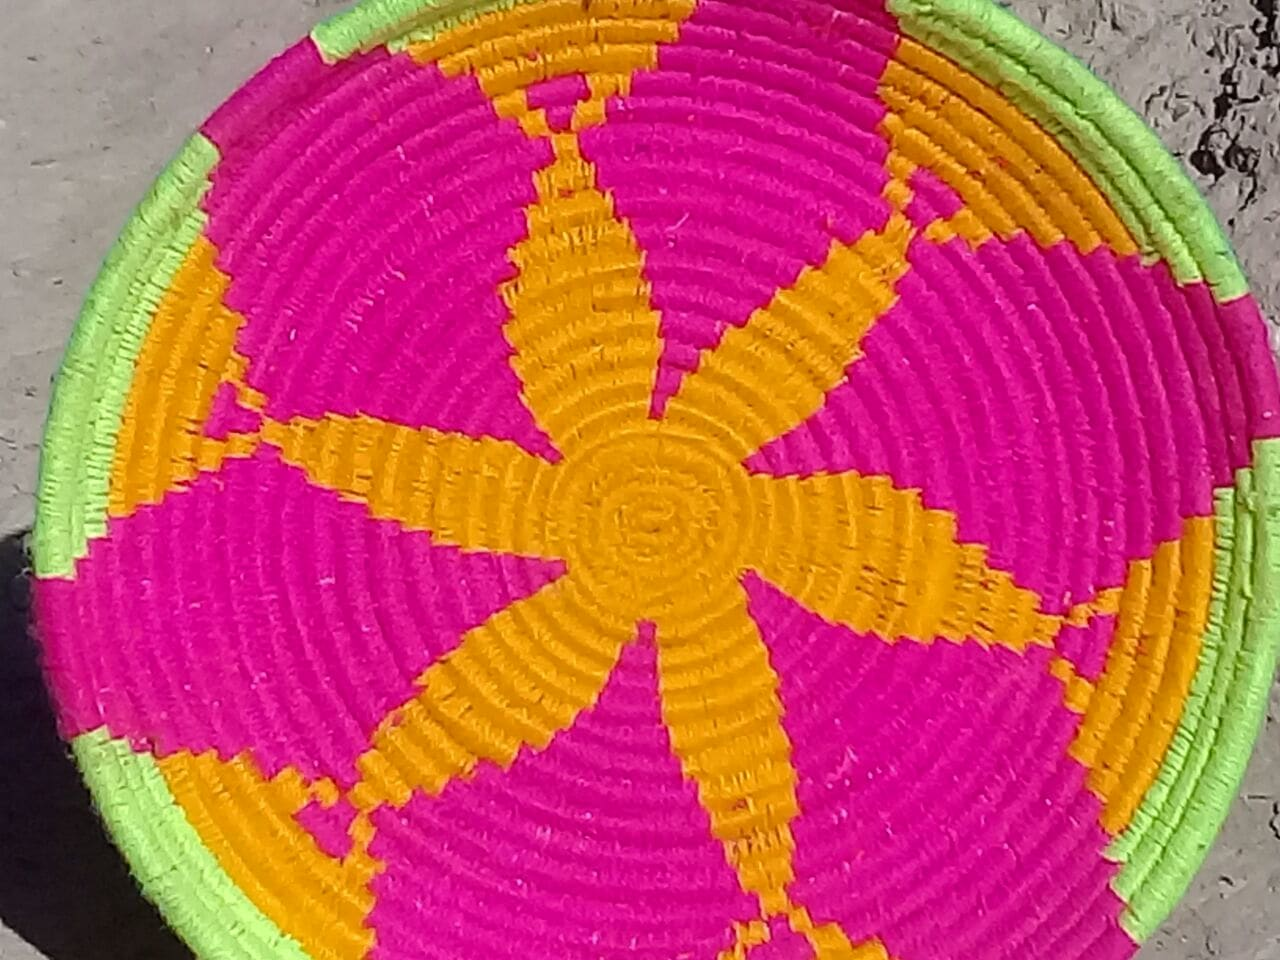 Basket Dyed Wool and Reed Pink, Yellow Morocco